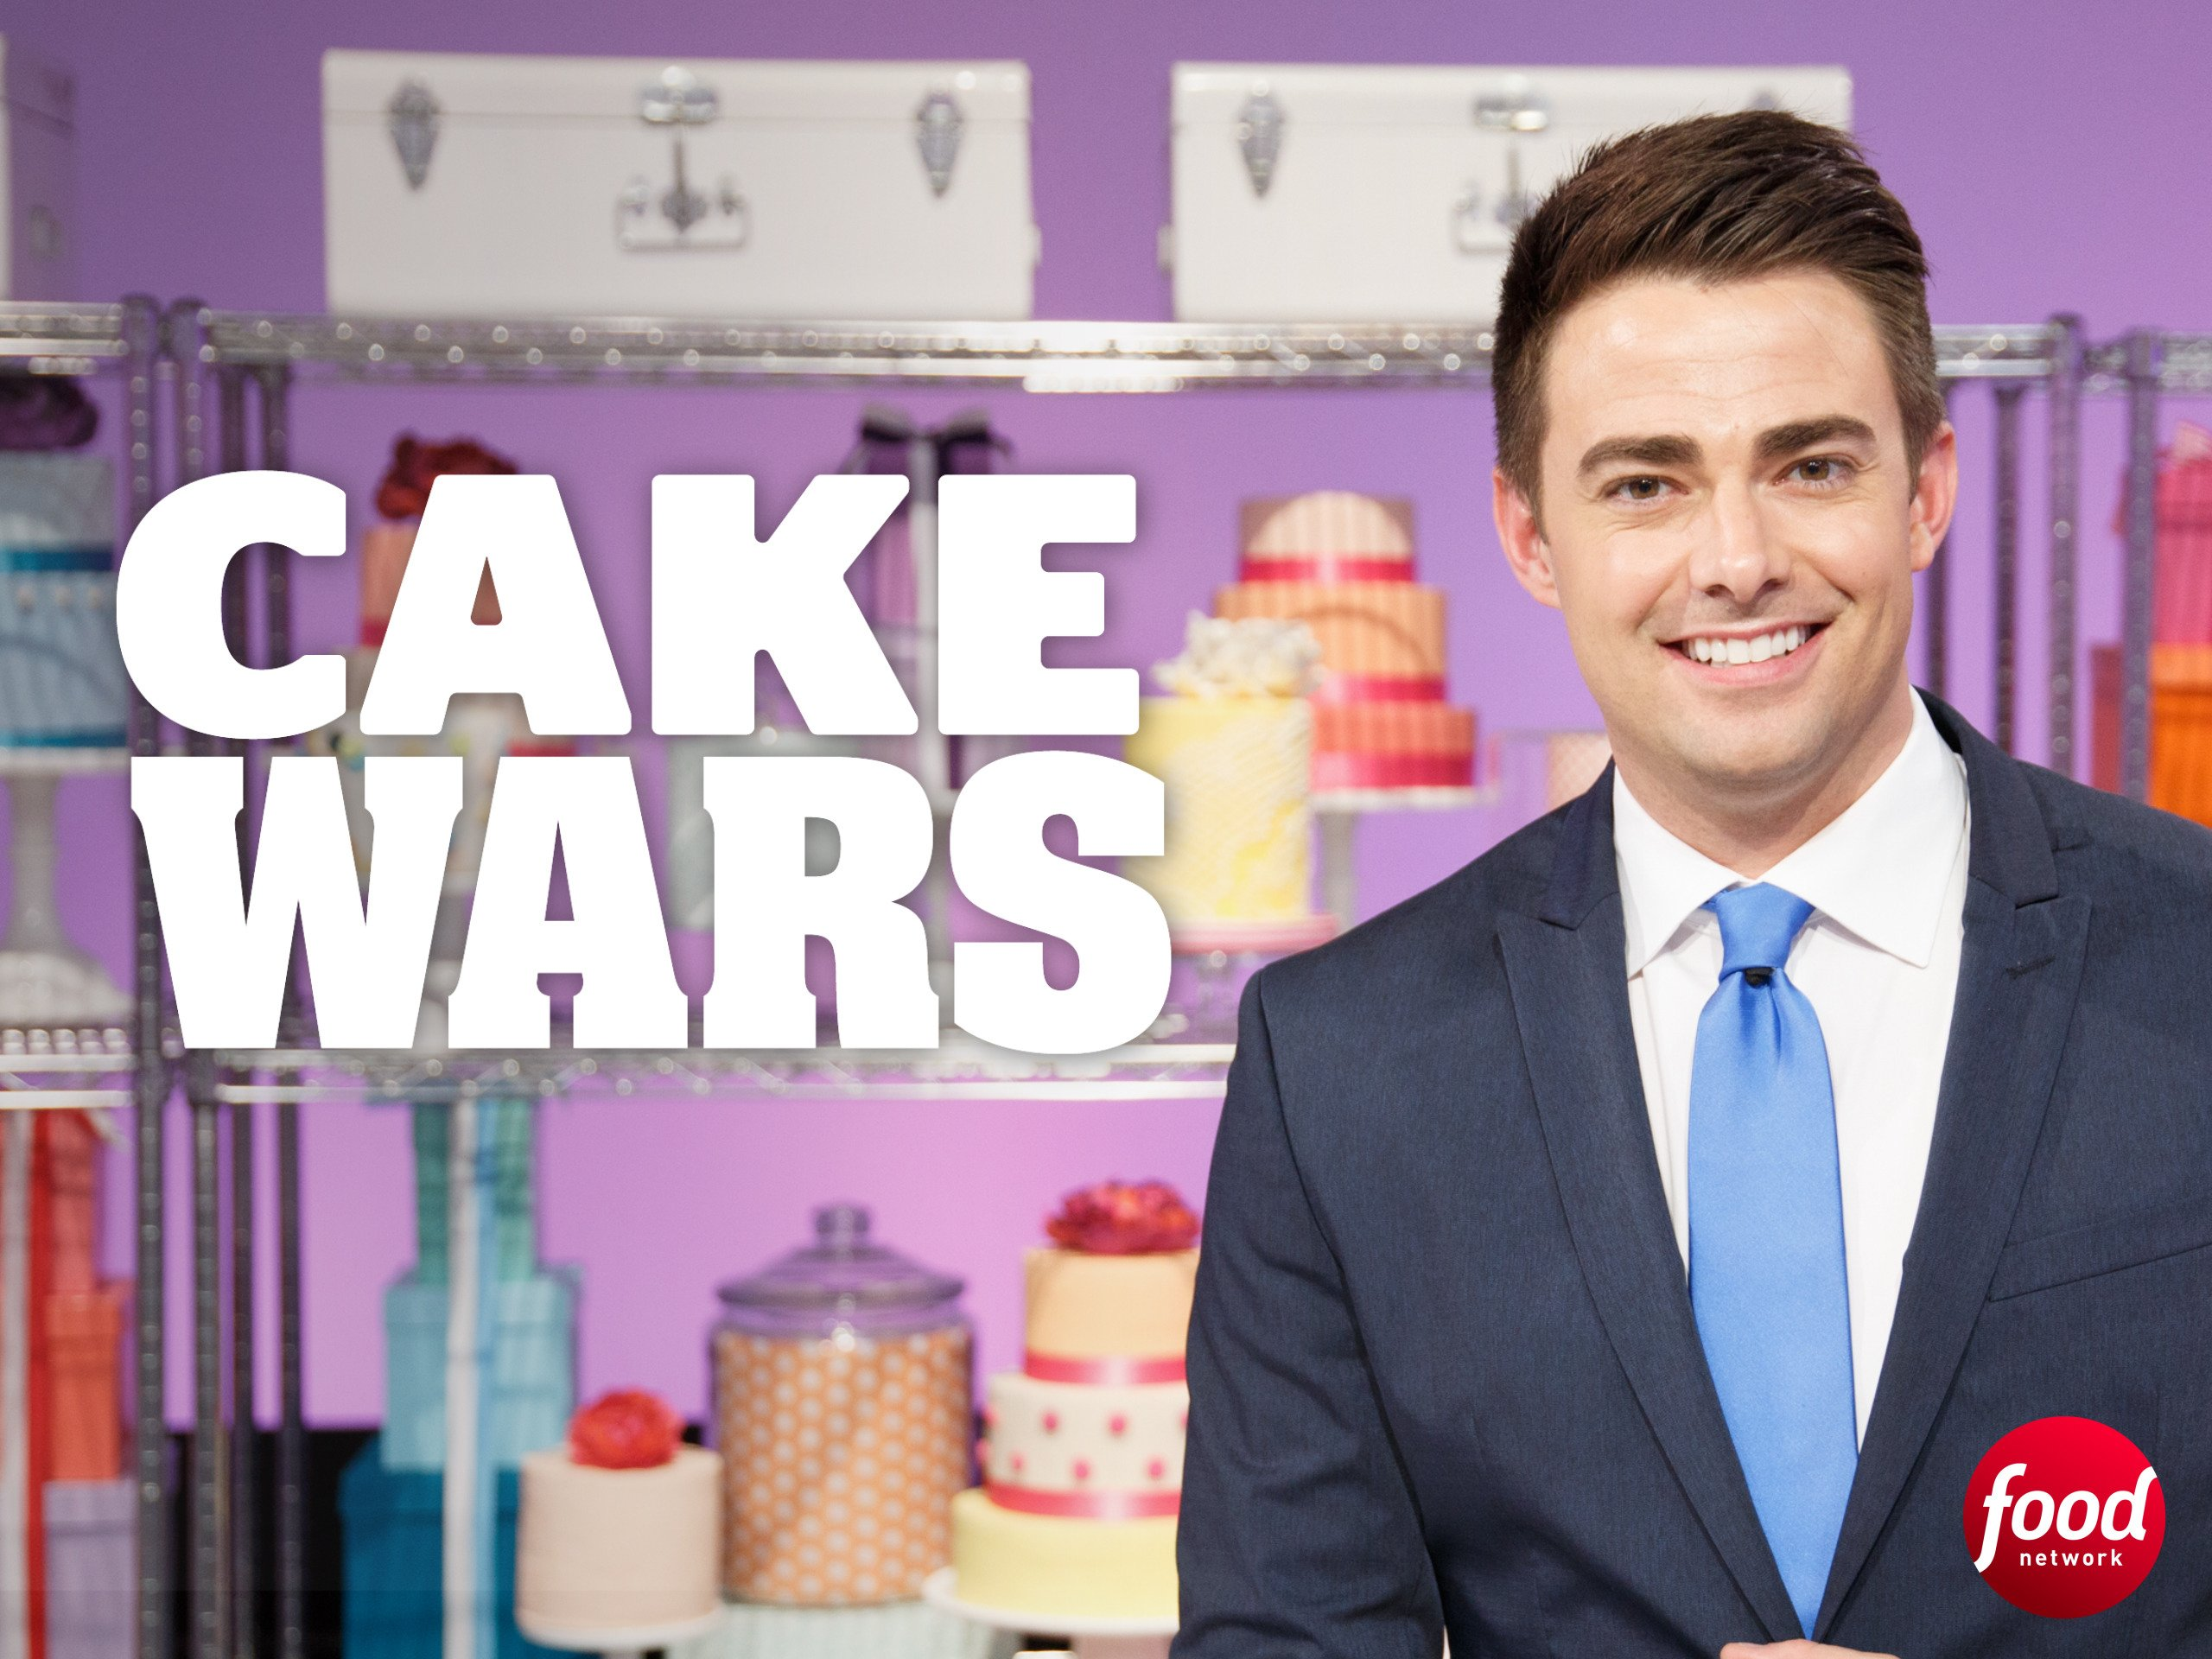 amazon com cake wars season 4 amazon digital services llc